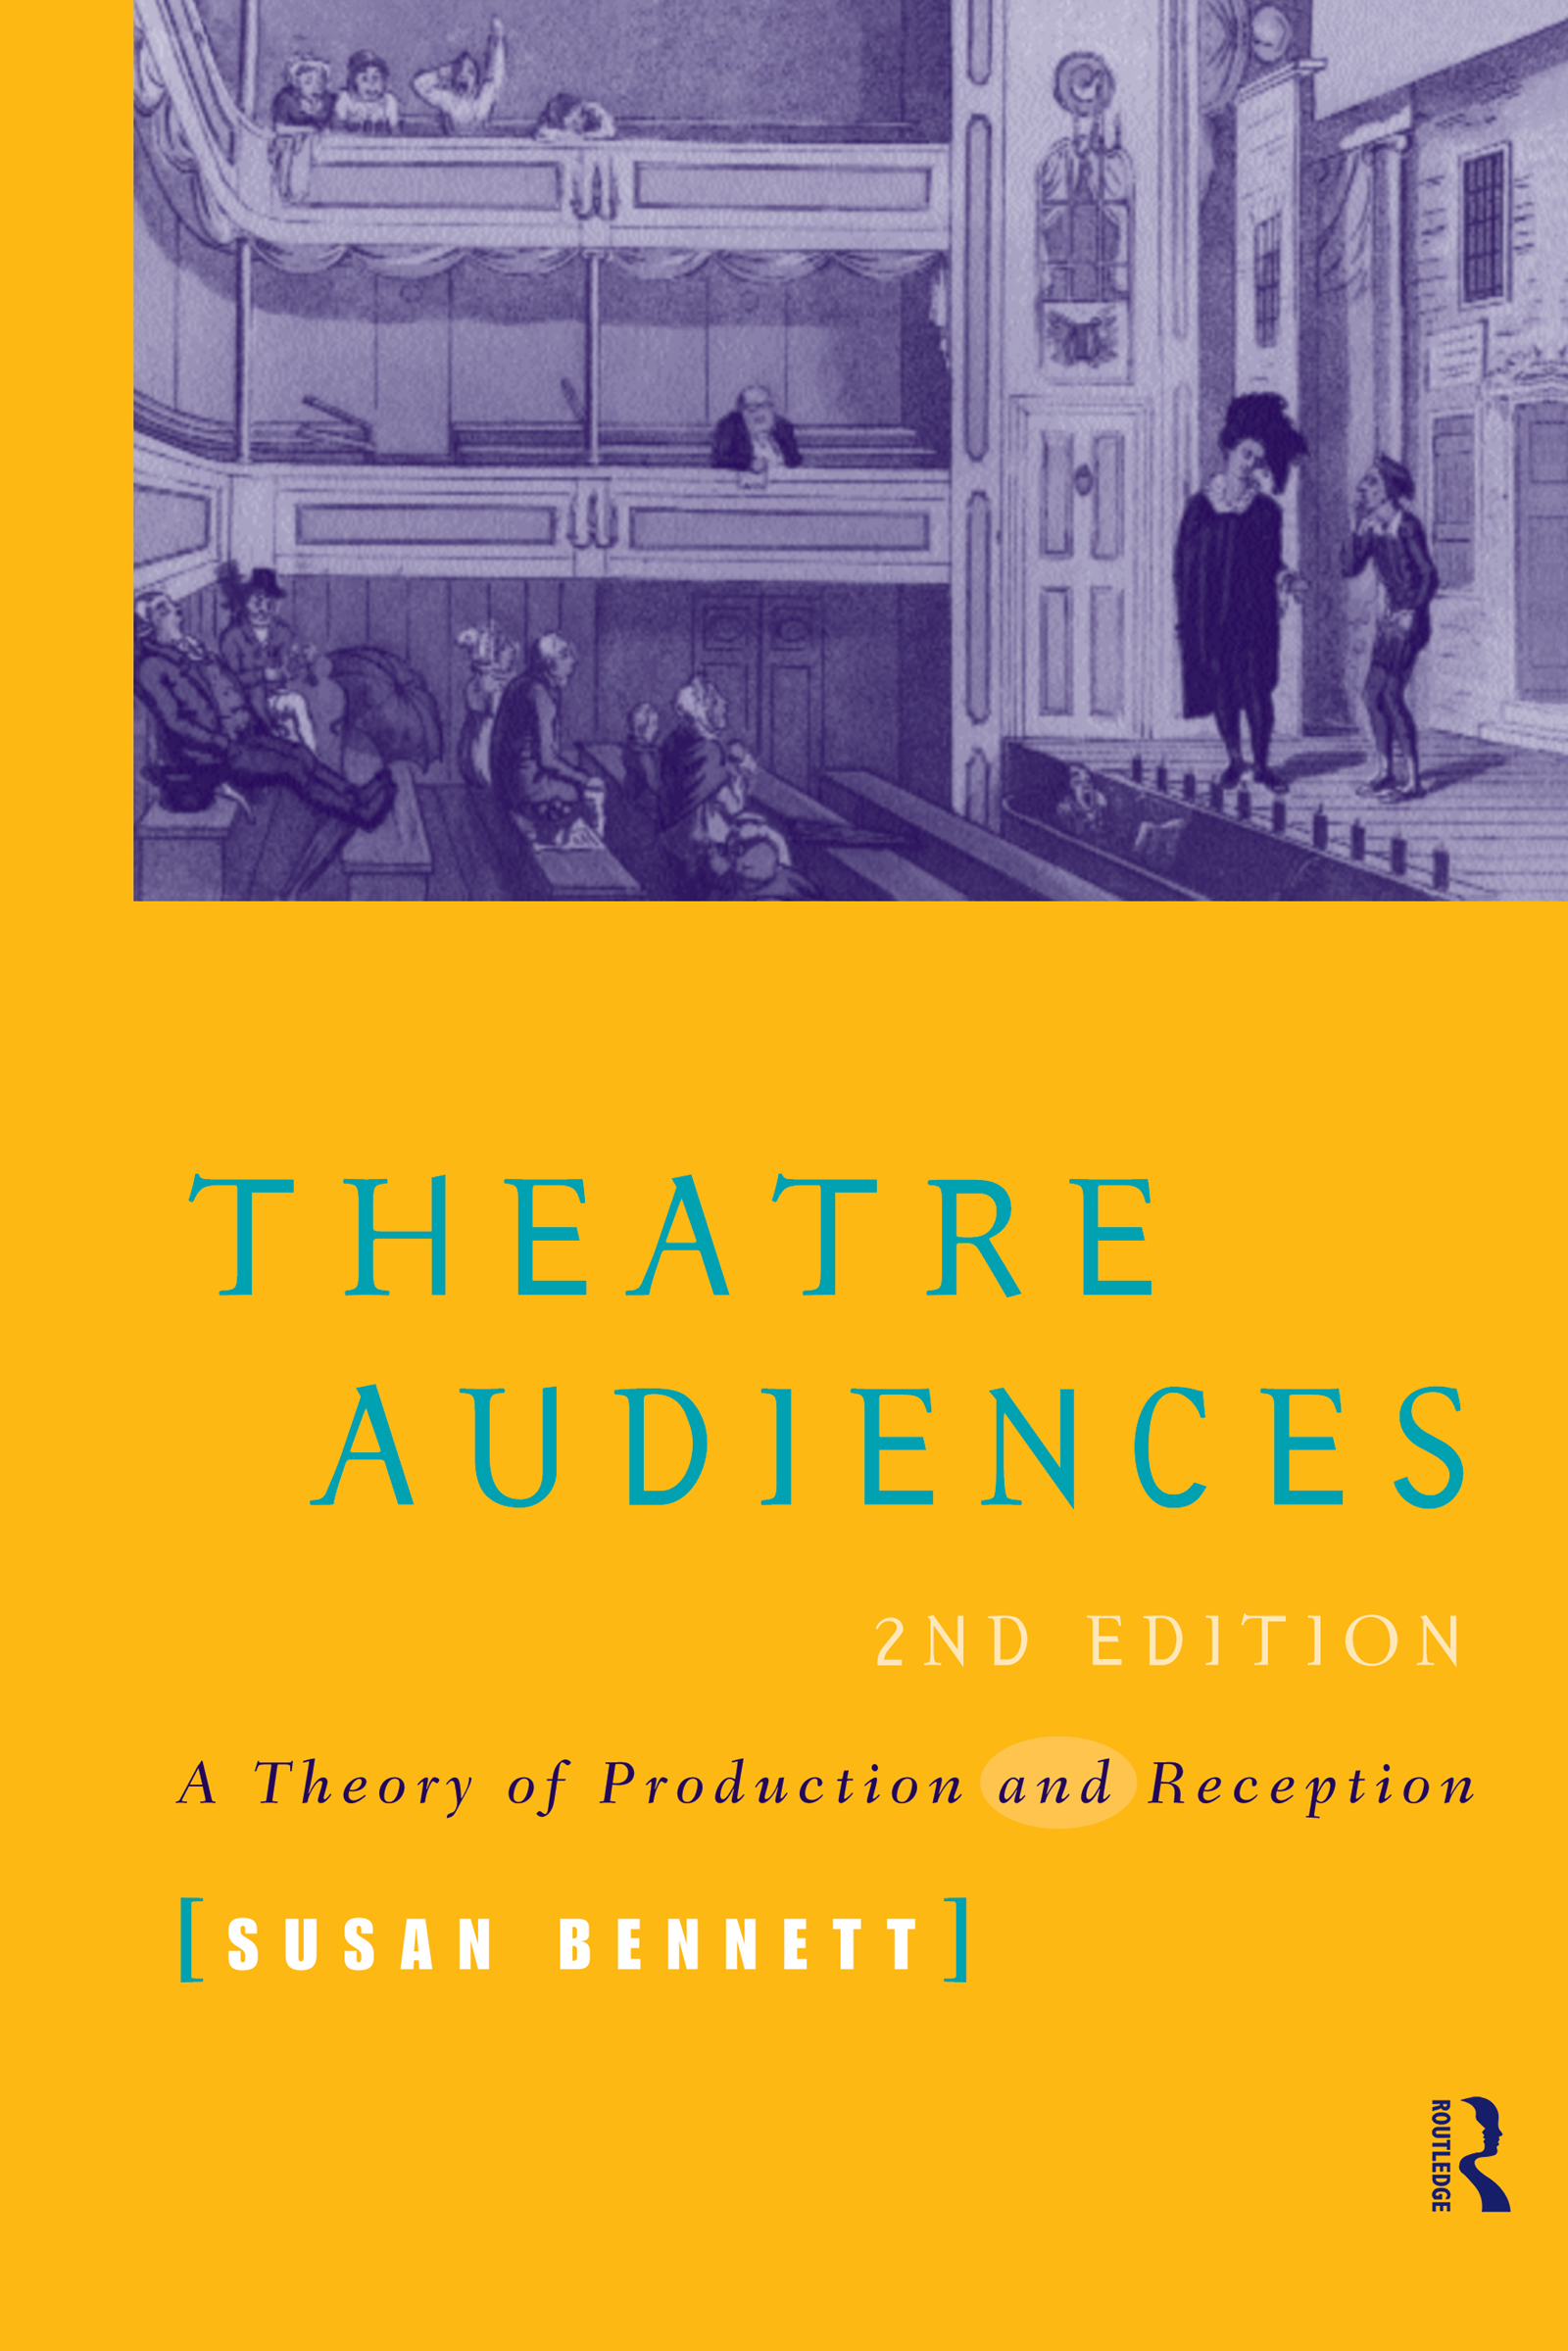 Theatre Audiences